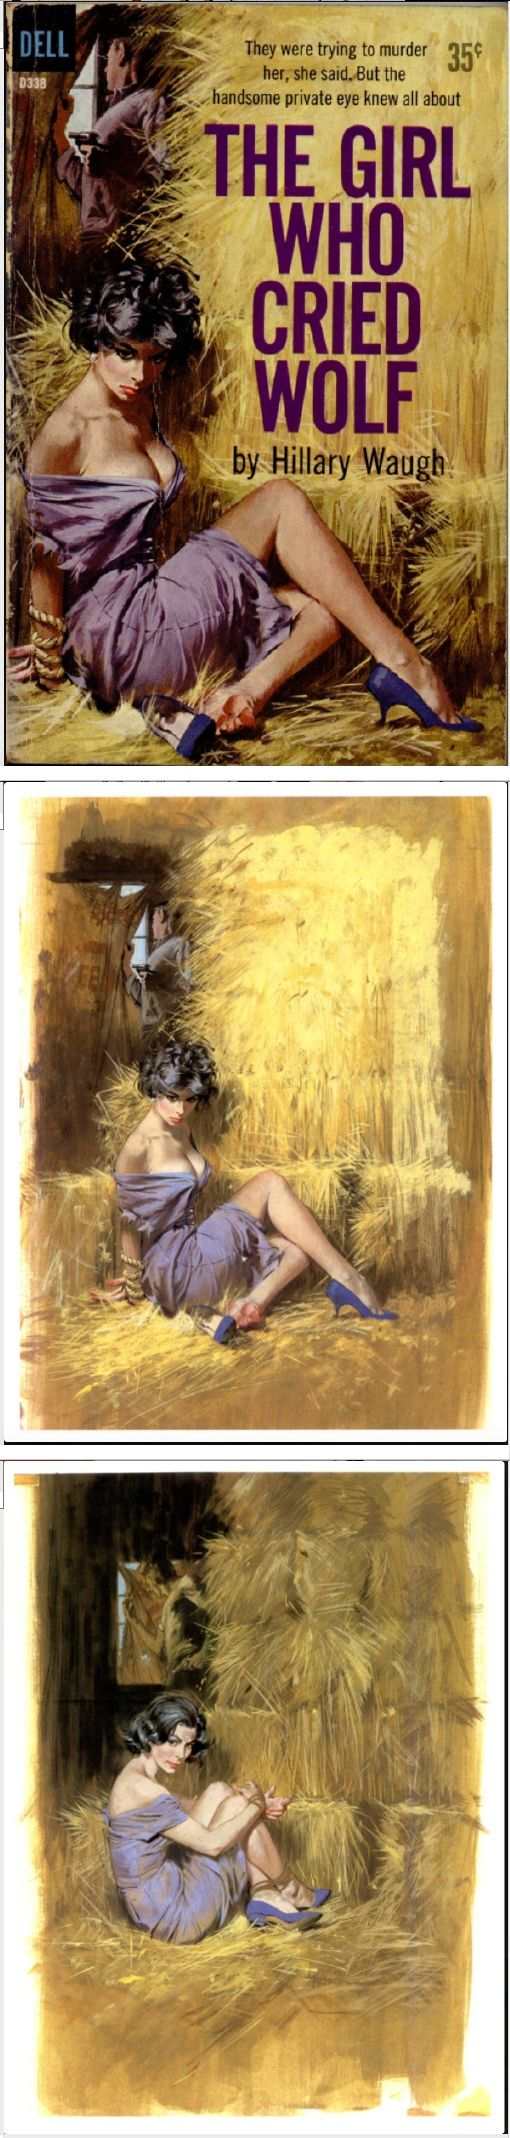 ROBERT McGINNIS - The Girl Who Cried Wold by Hillary Waugh - 1960 Dell Books D338 - items by brownslair.tumblr